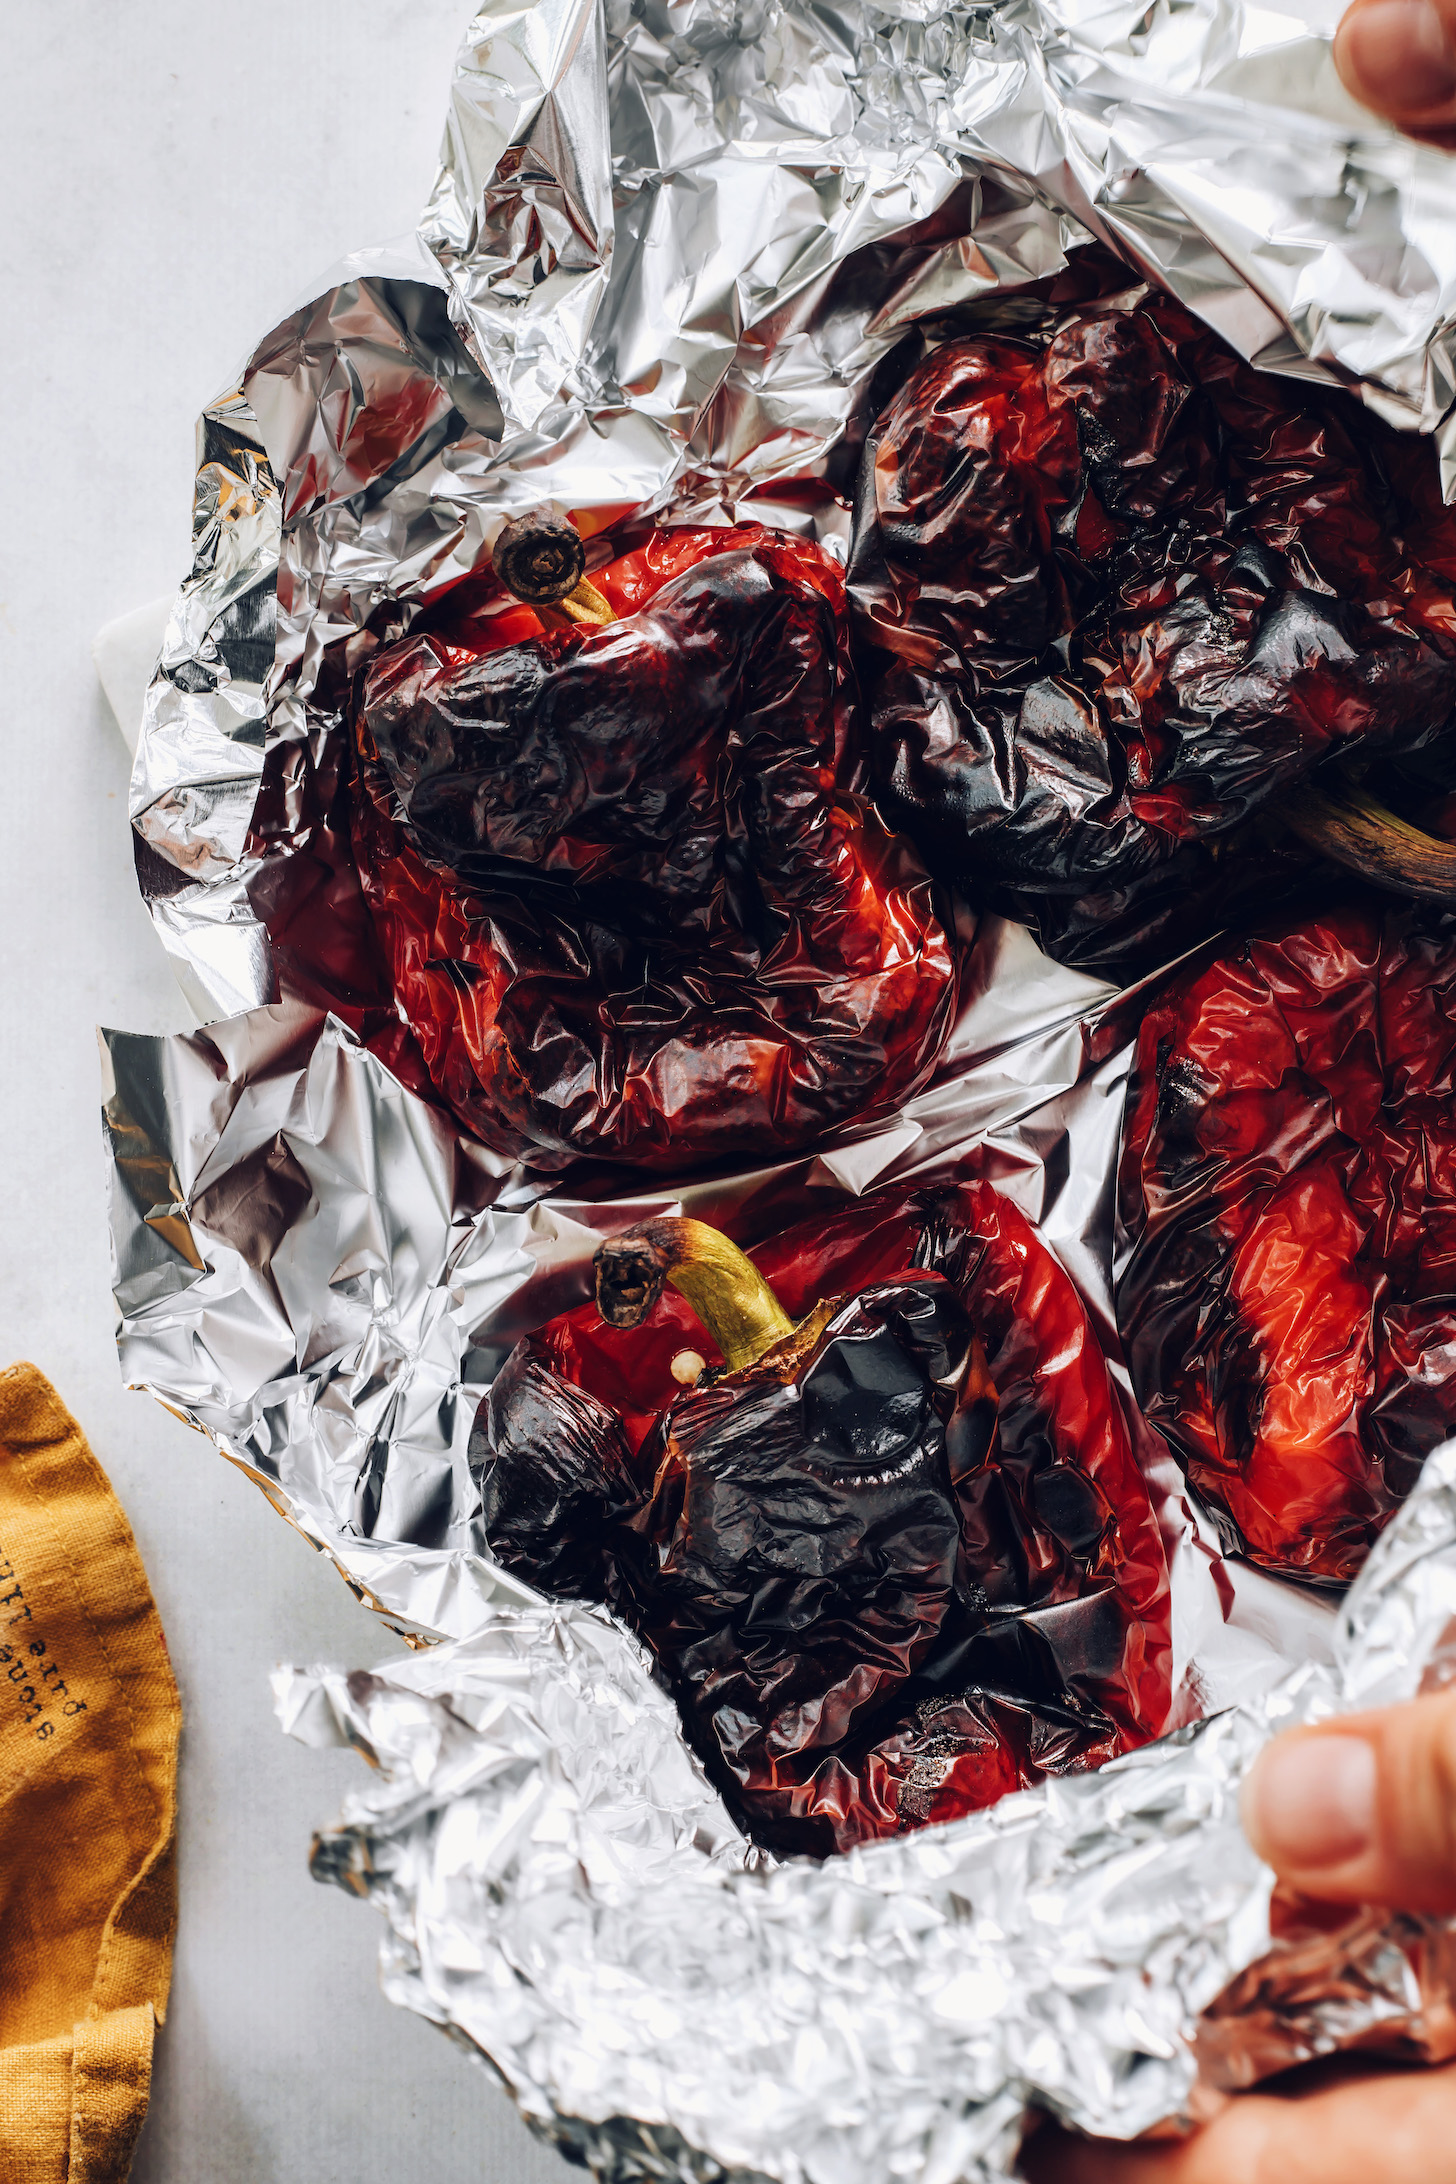 Roasted red bell peppers in foil